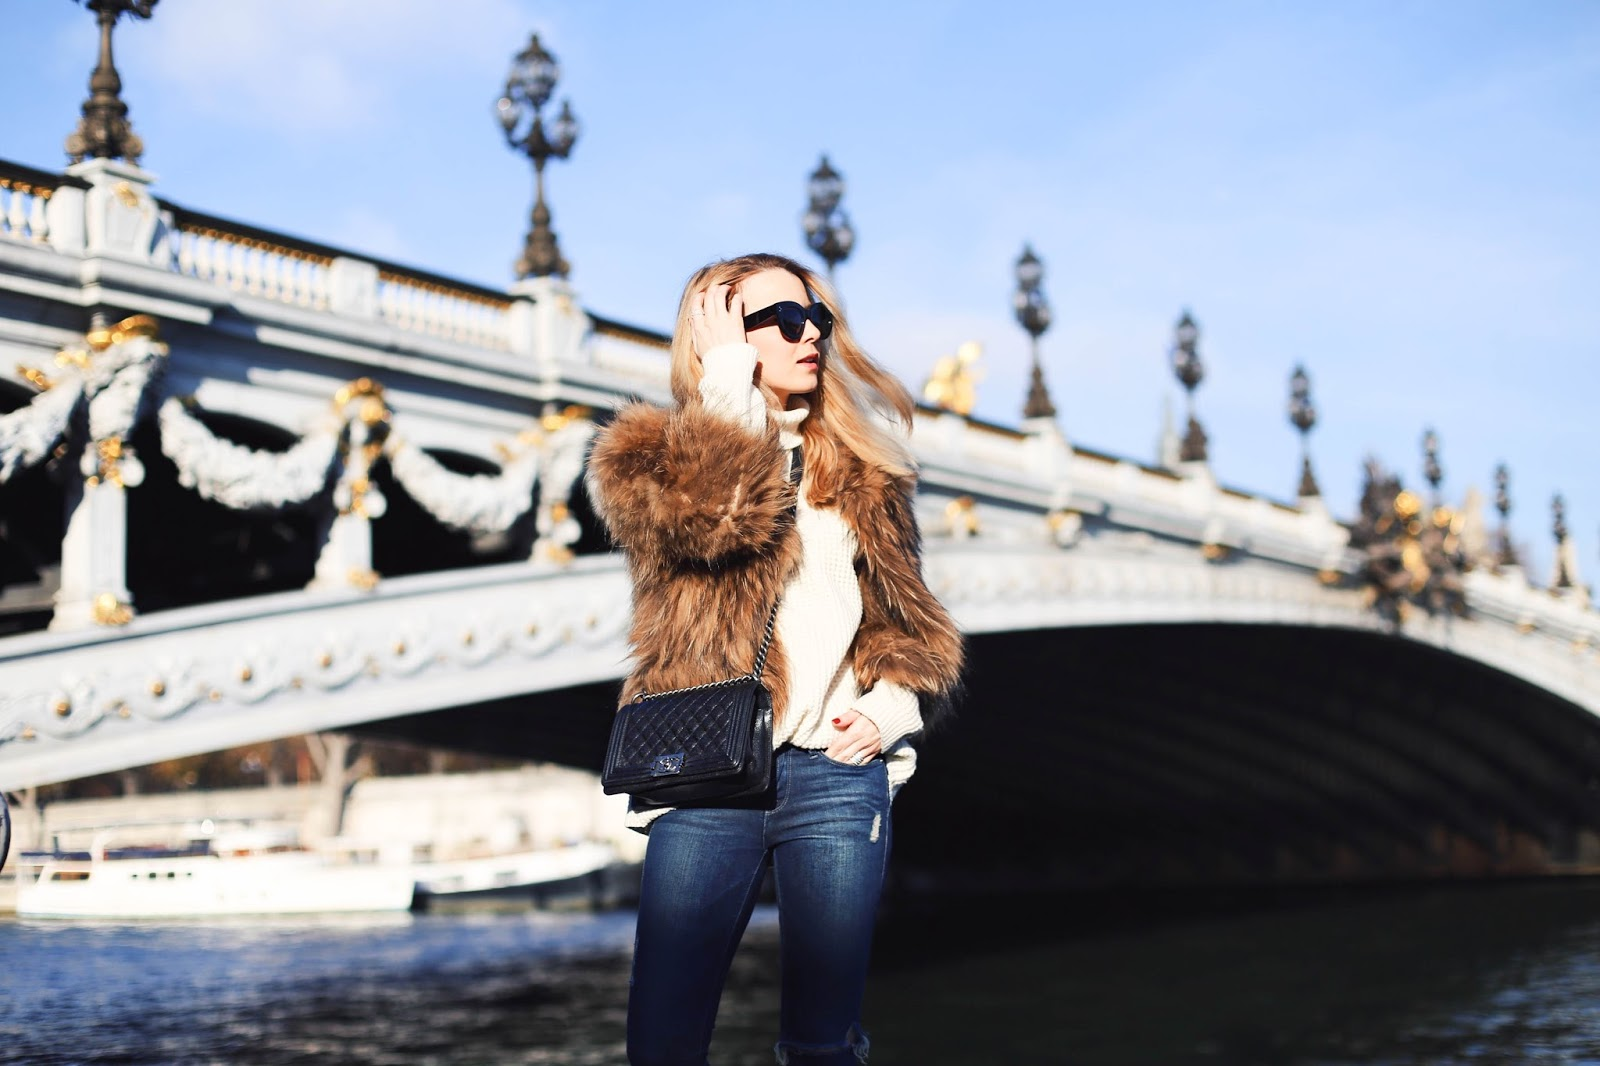 Caroline from Pardon My Obsession looking stunning in Paris (c) Pardon My Obsession